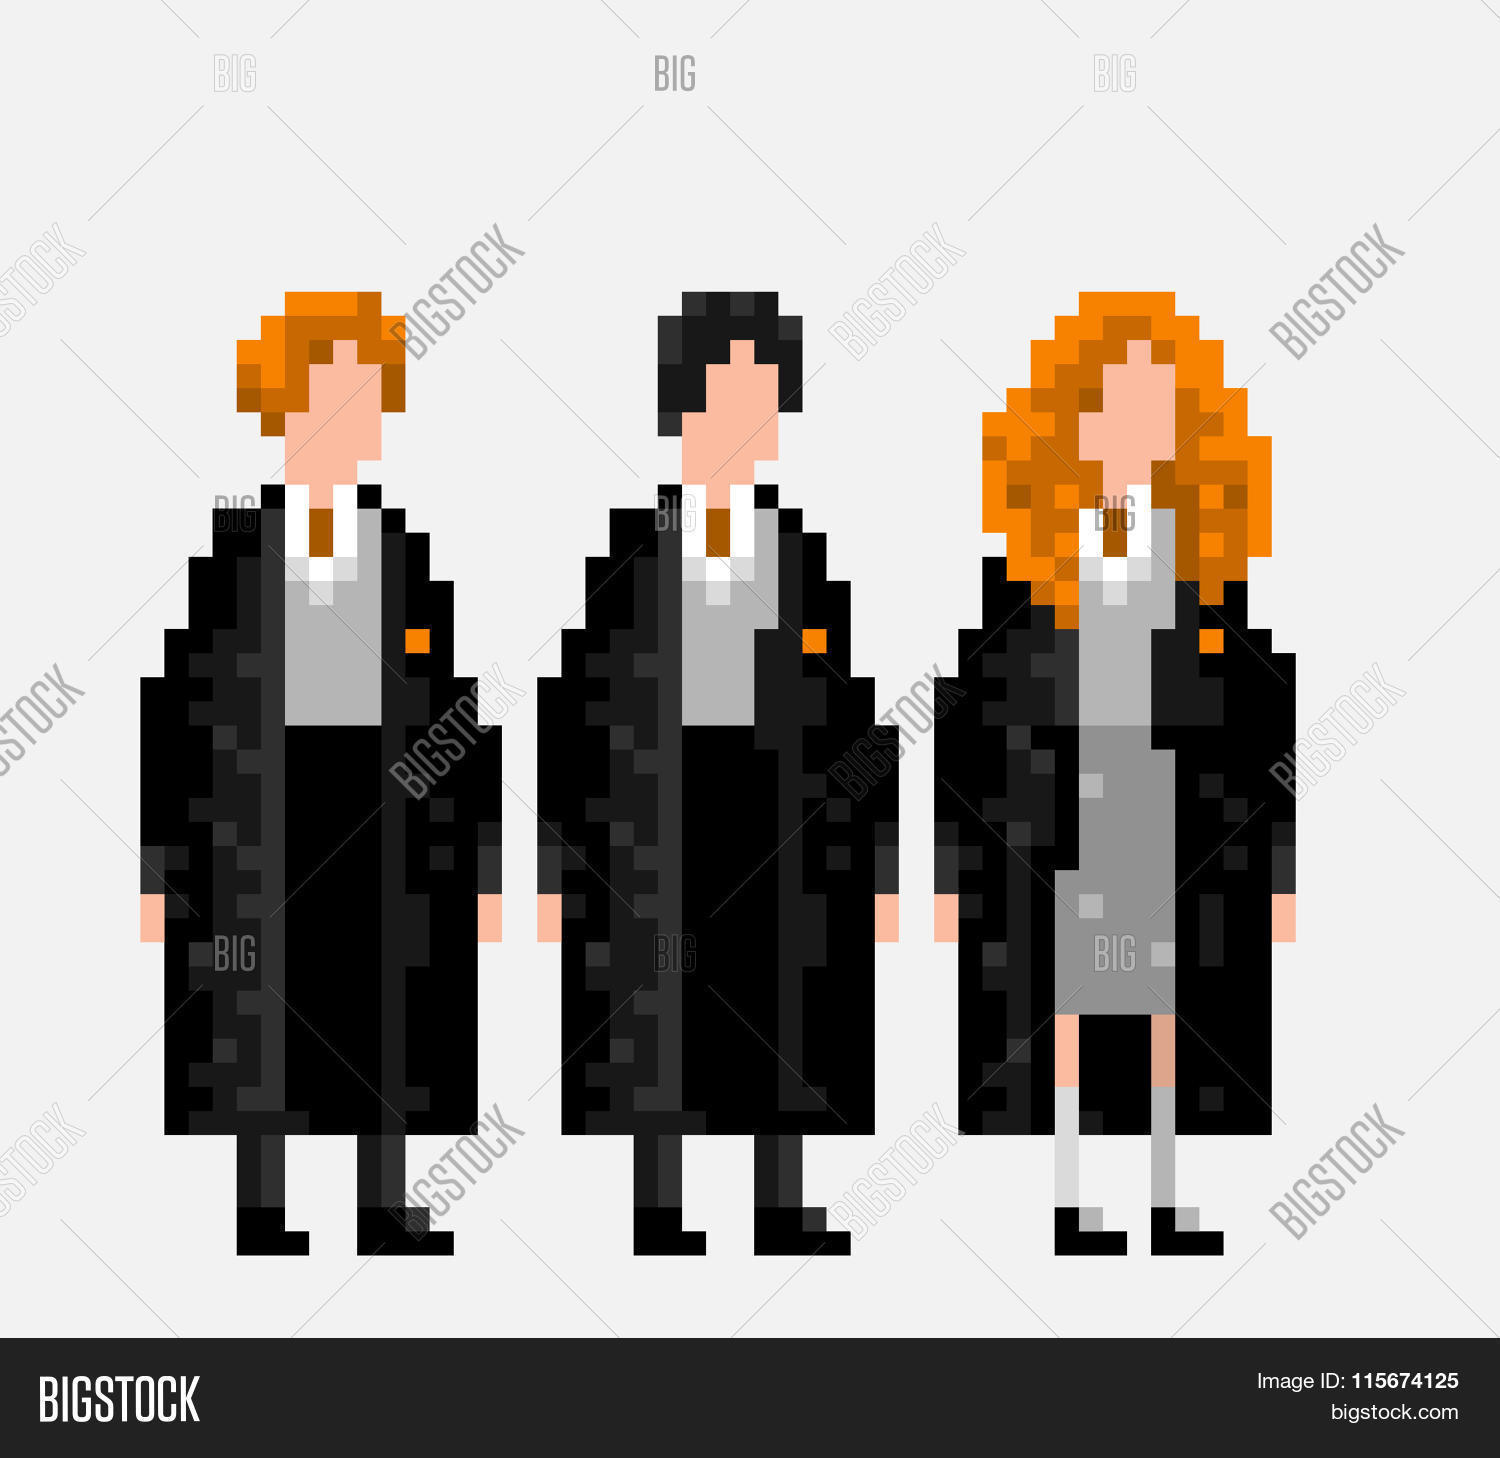 Harry Potter Pixel Art Related Keywords & Suggestions - Harry Potter ...